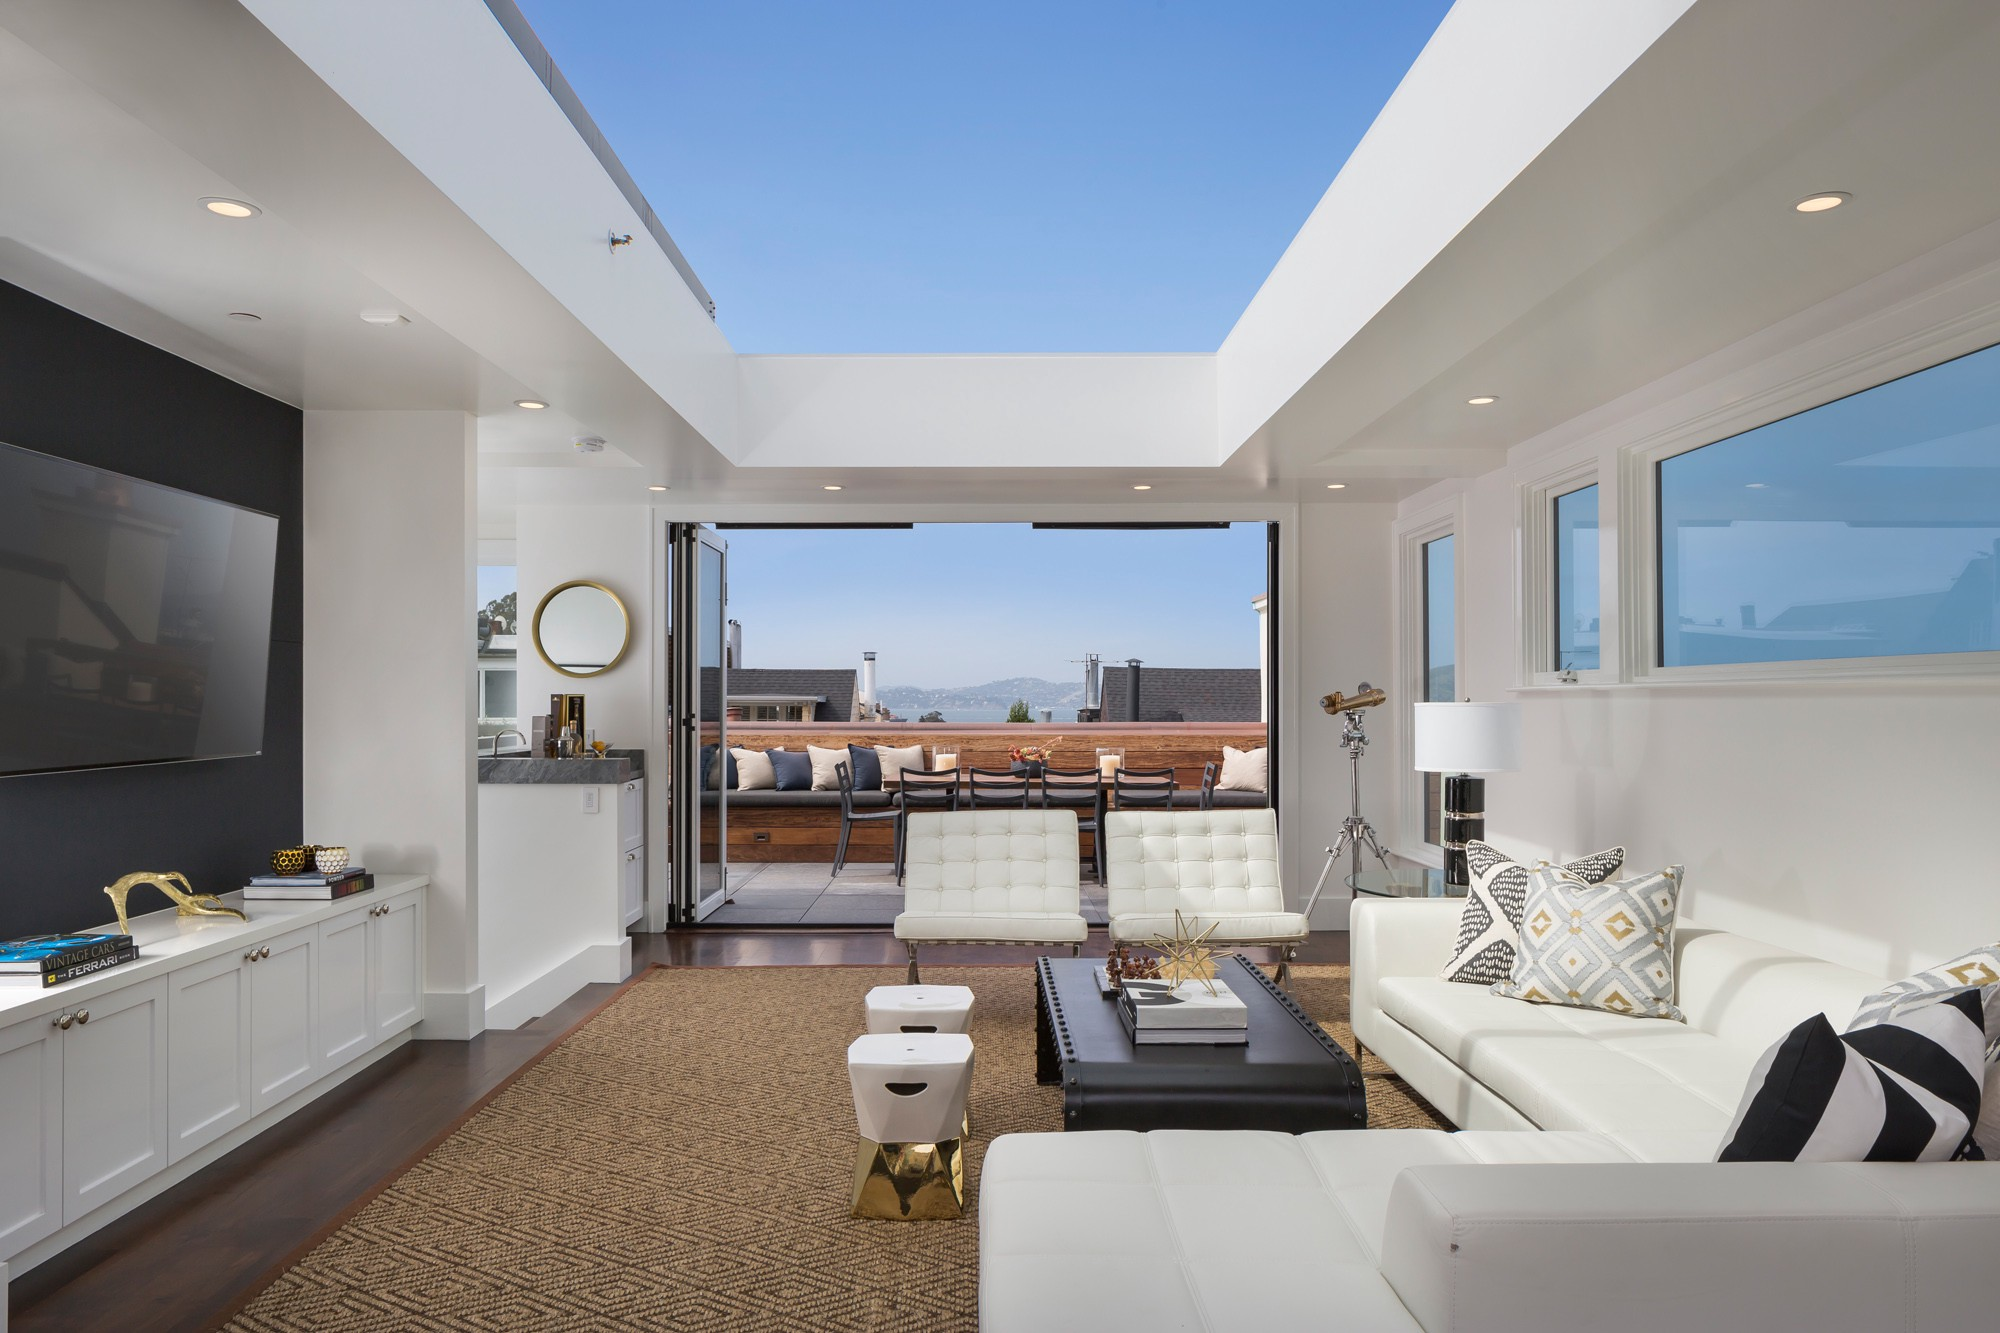 Cow Hollow residence with retractable roof. San Francisco.